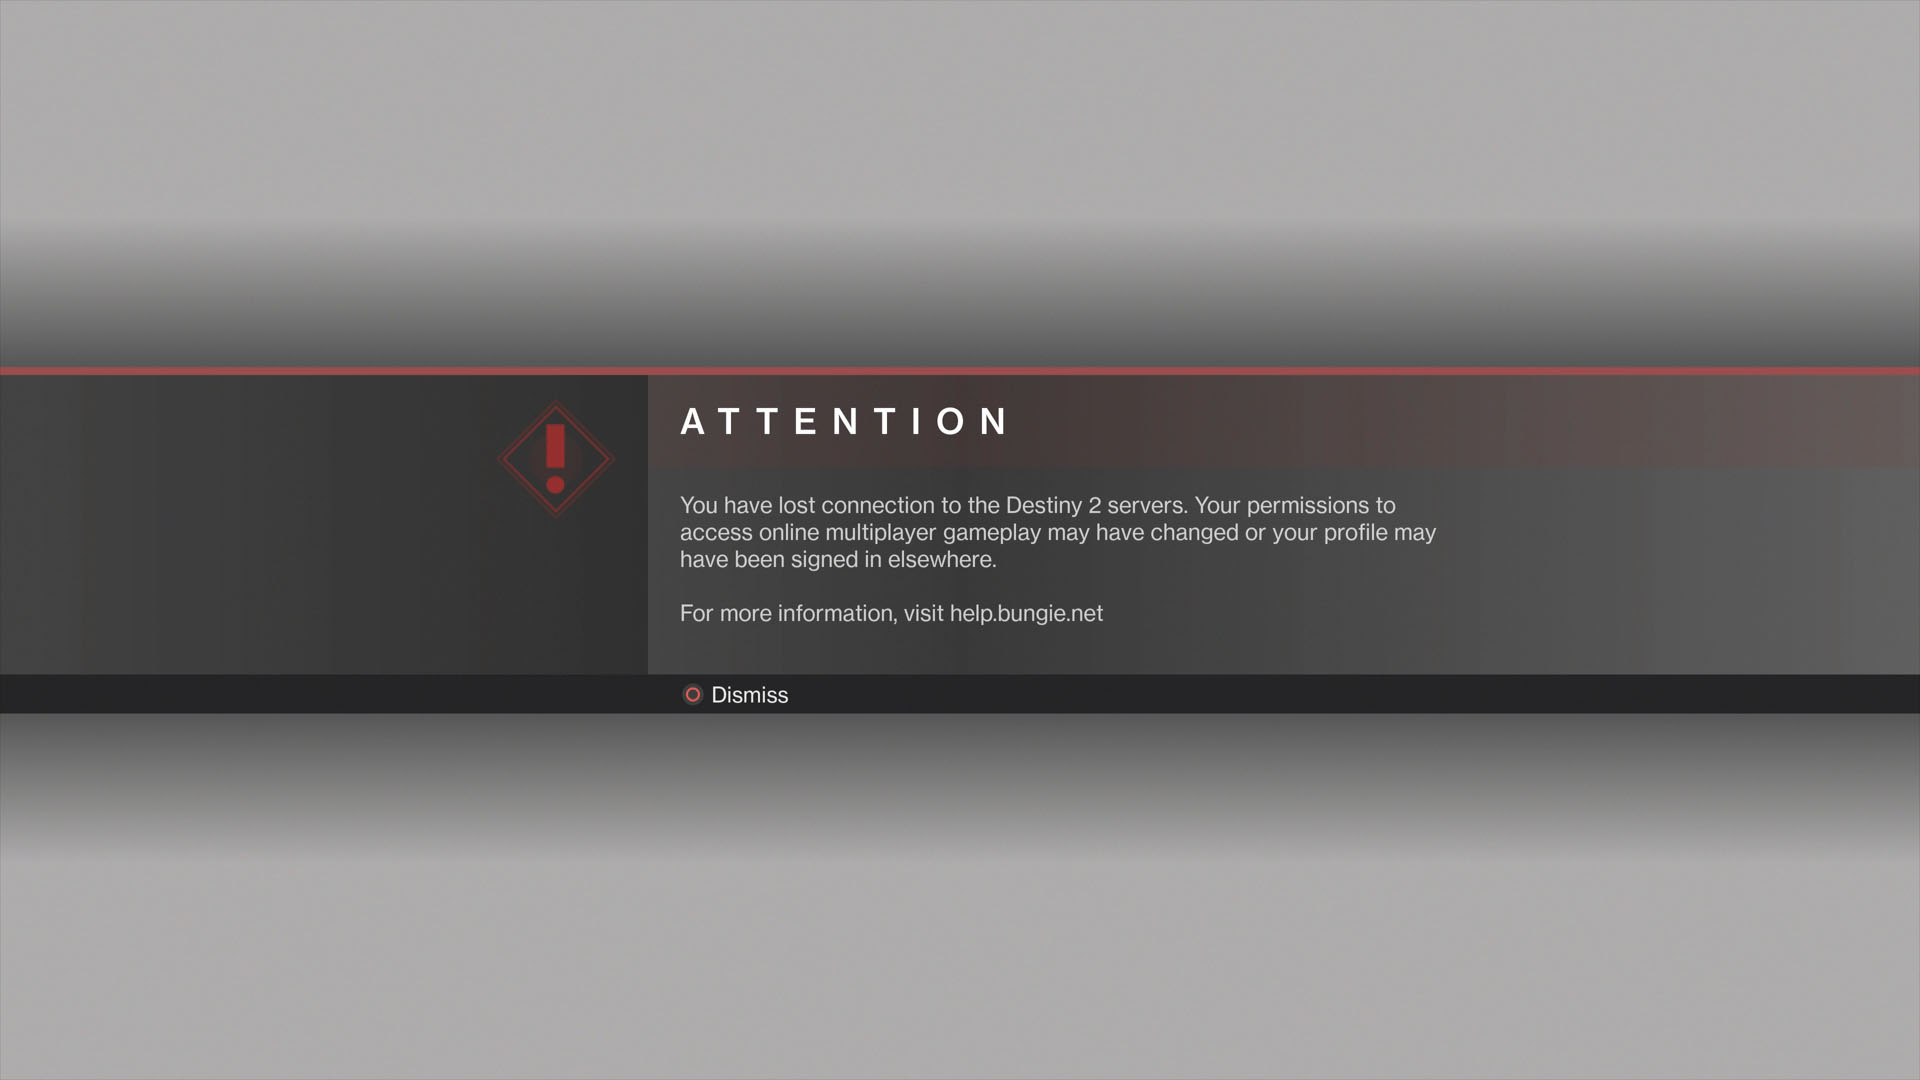 You Have Lost Connection to the Destiny 2 Servers Error